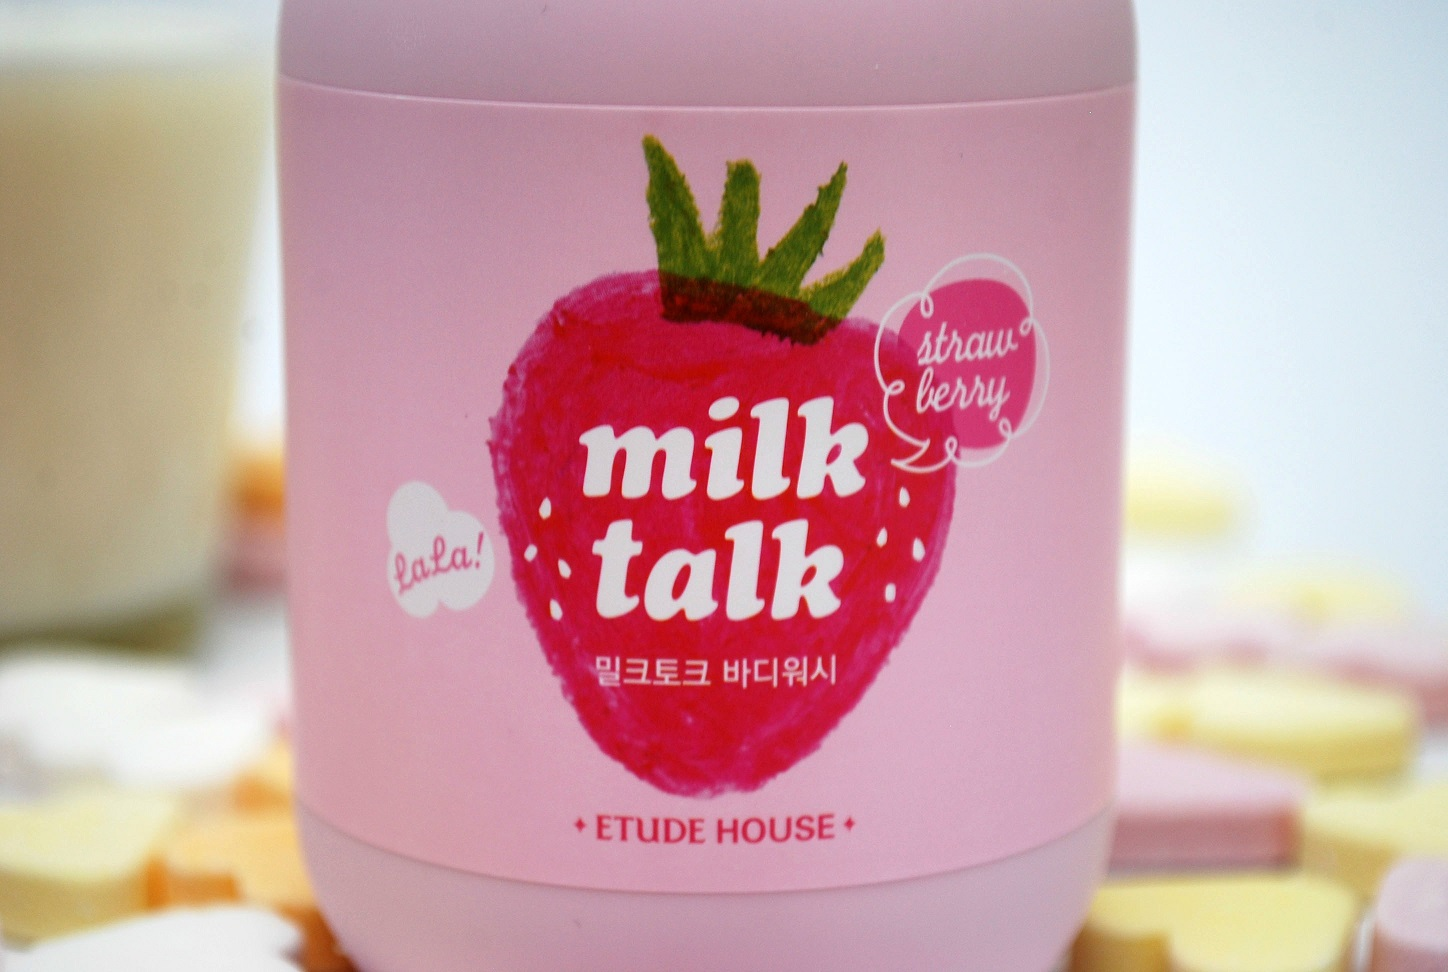 milk talk etude house body wash review strawberry